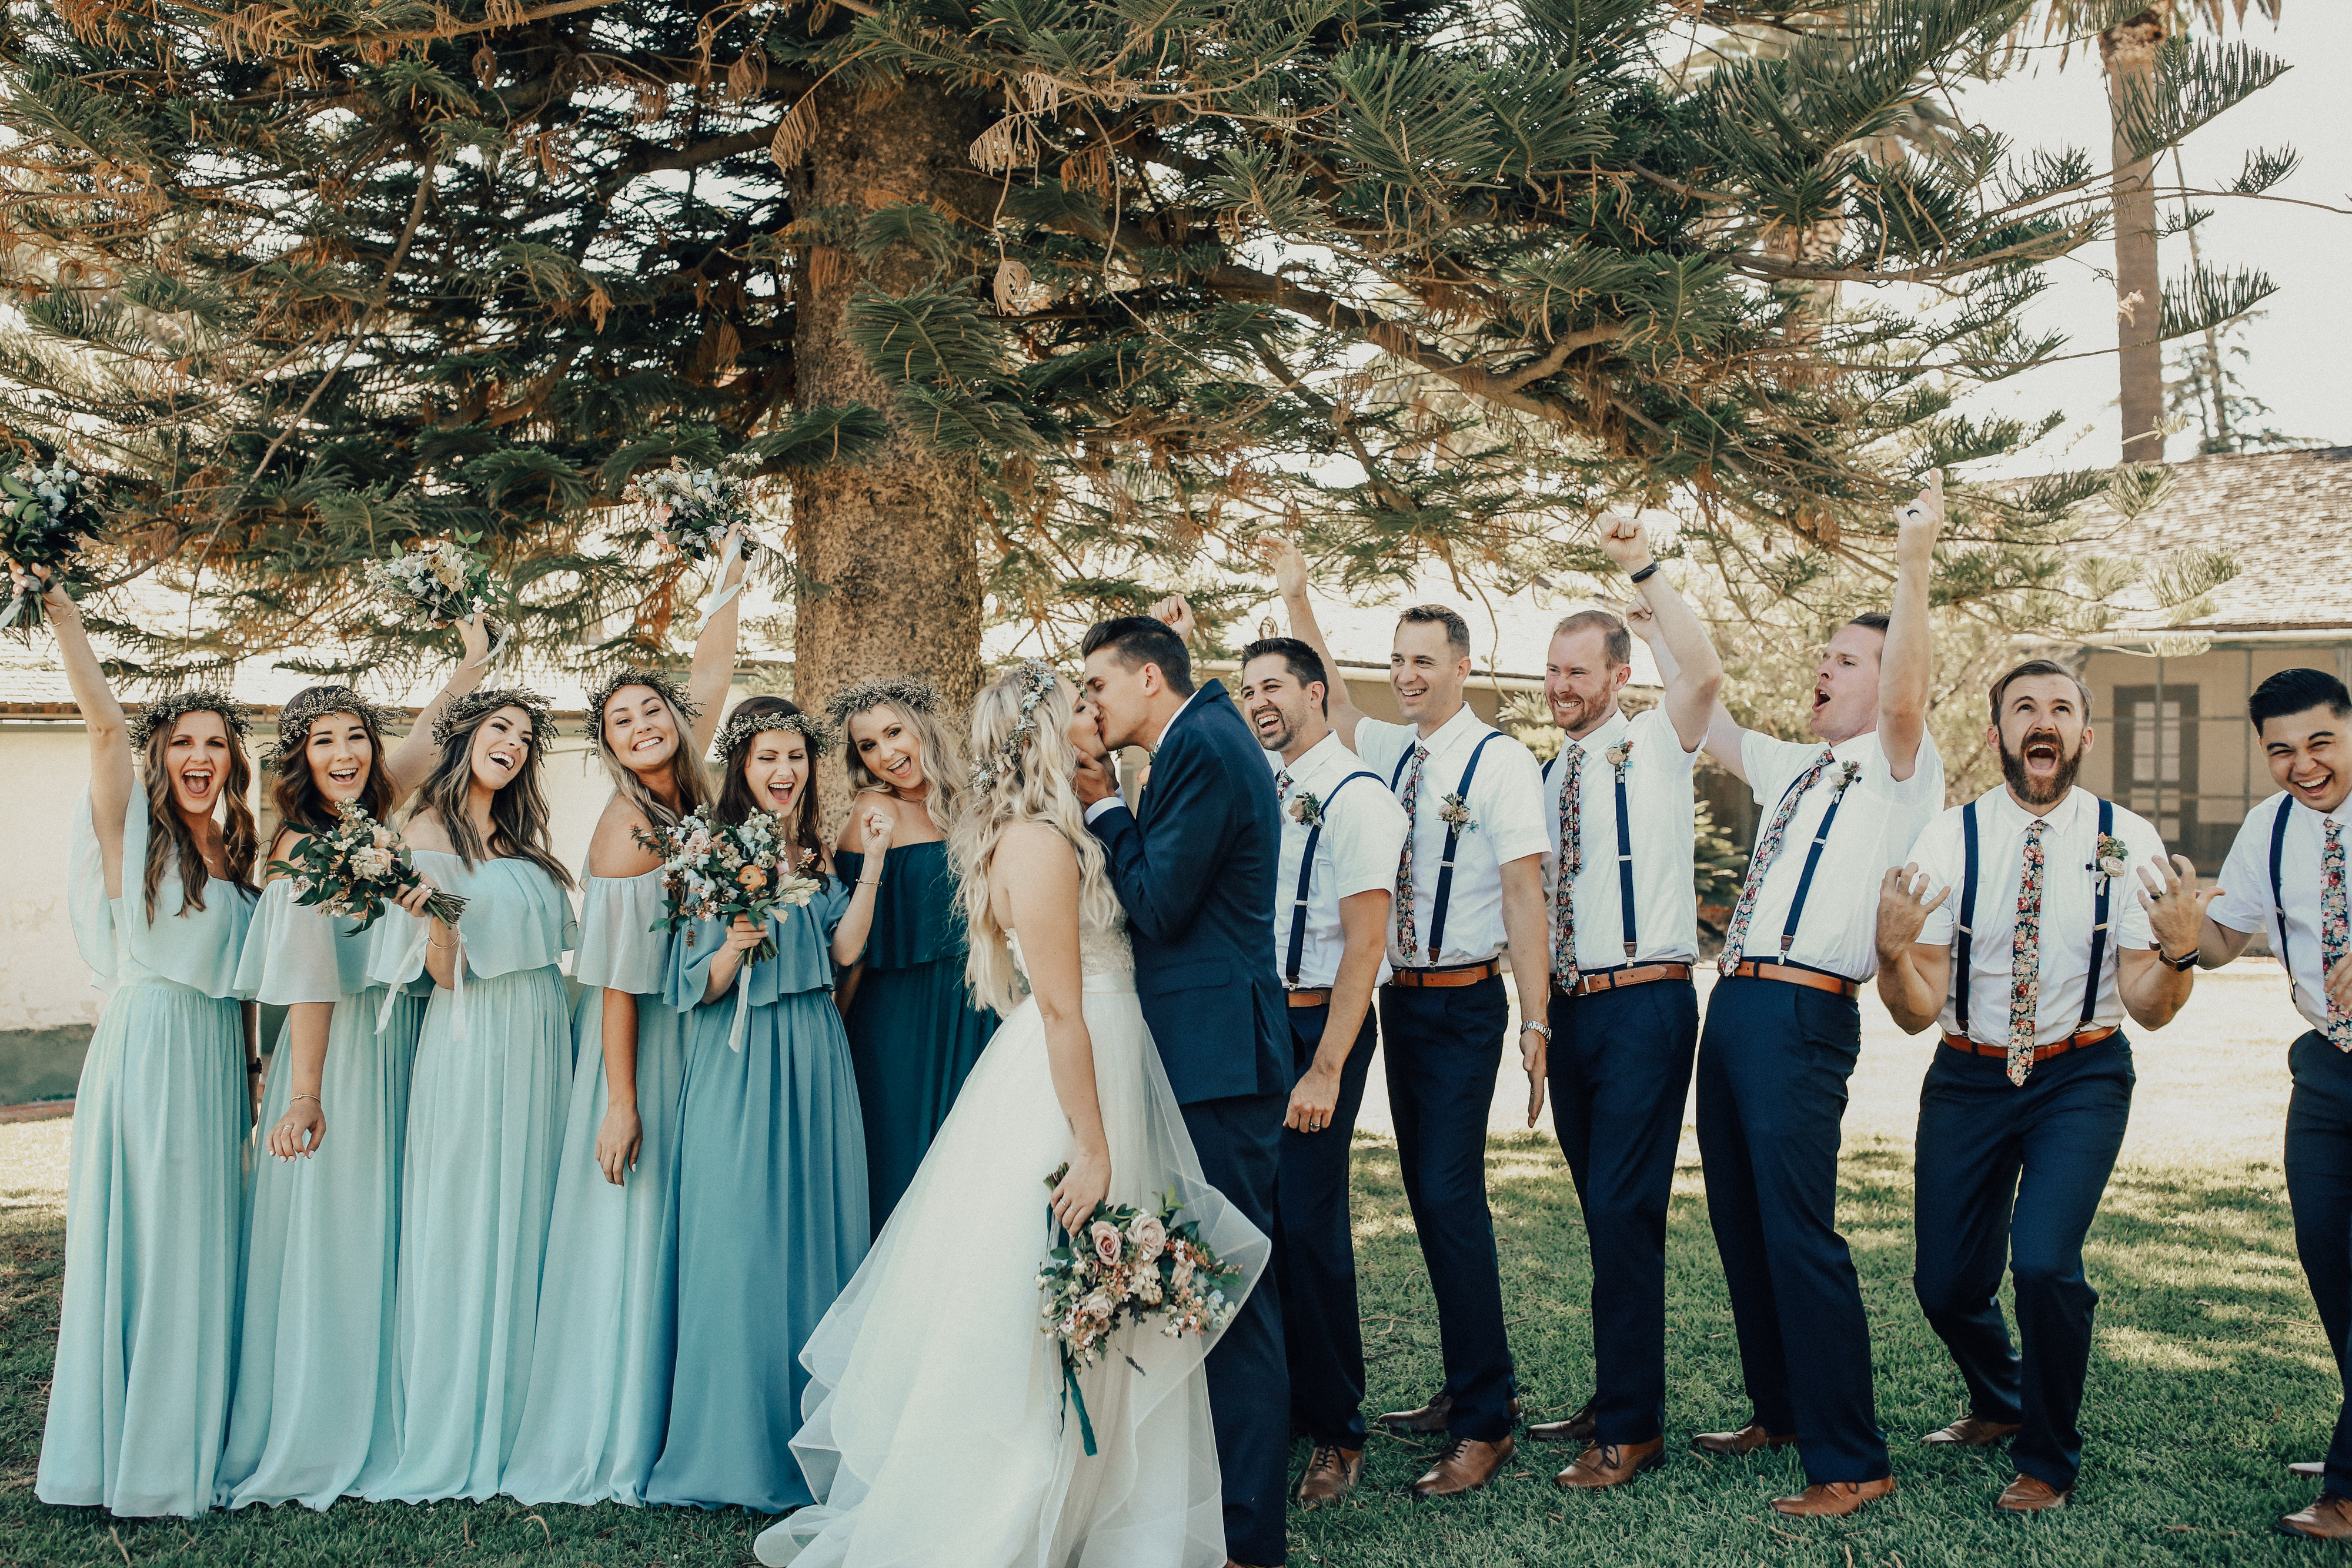 Bride and groom kiss at california wedding wedding party cheer and laugh with funny faces